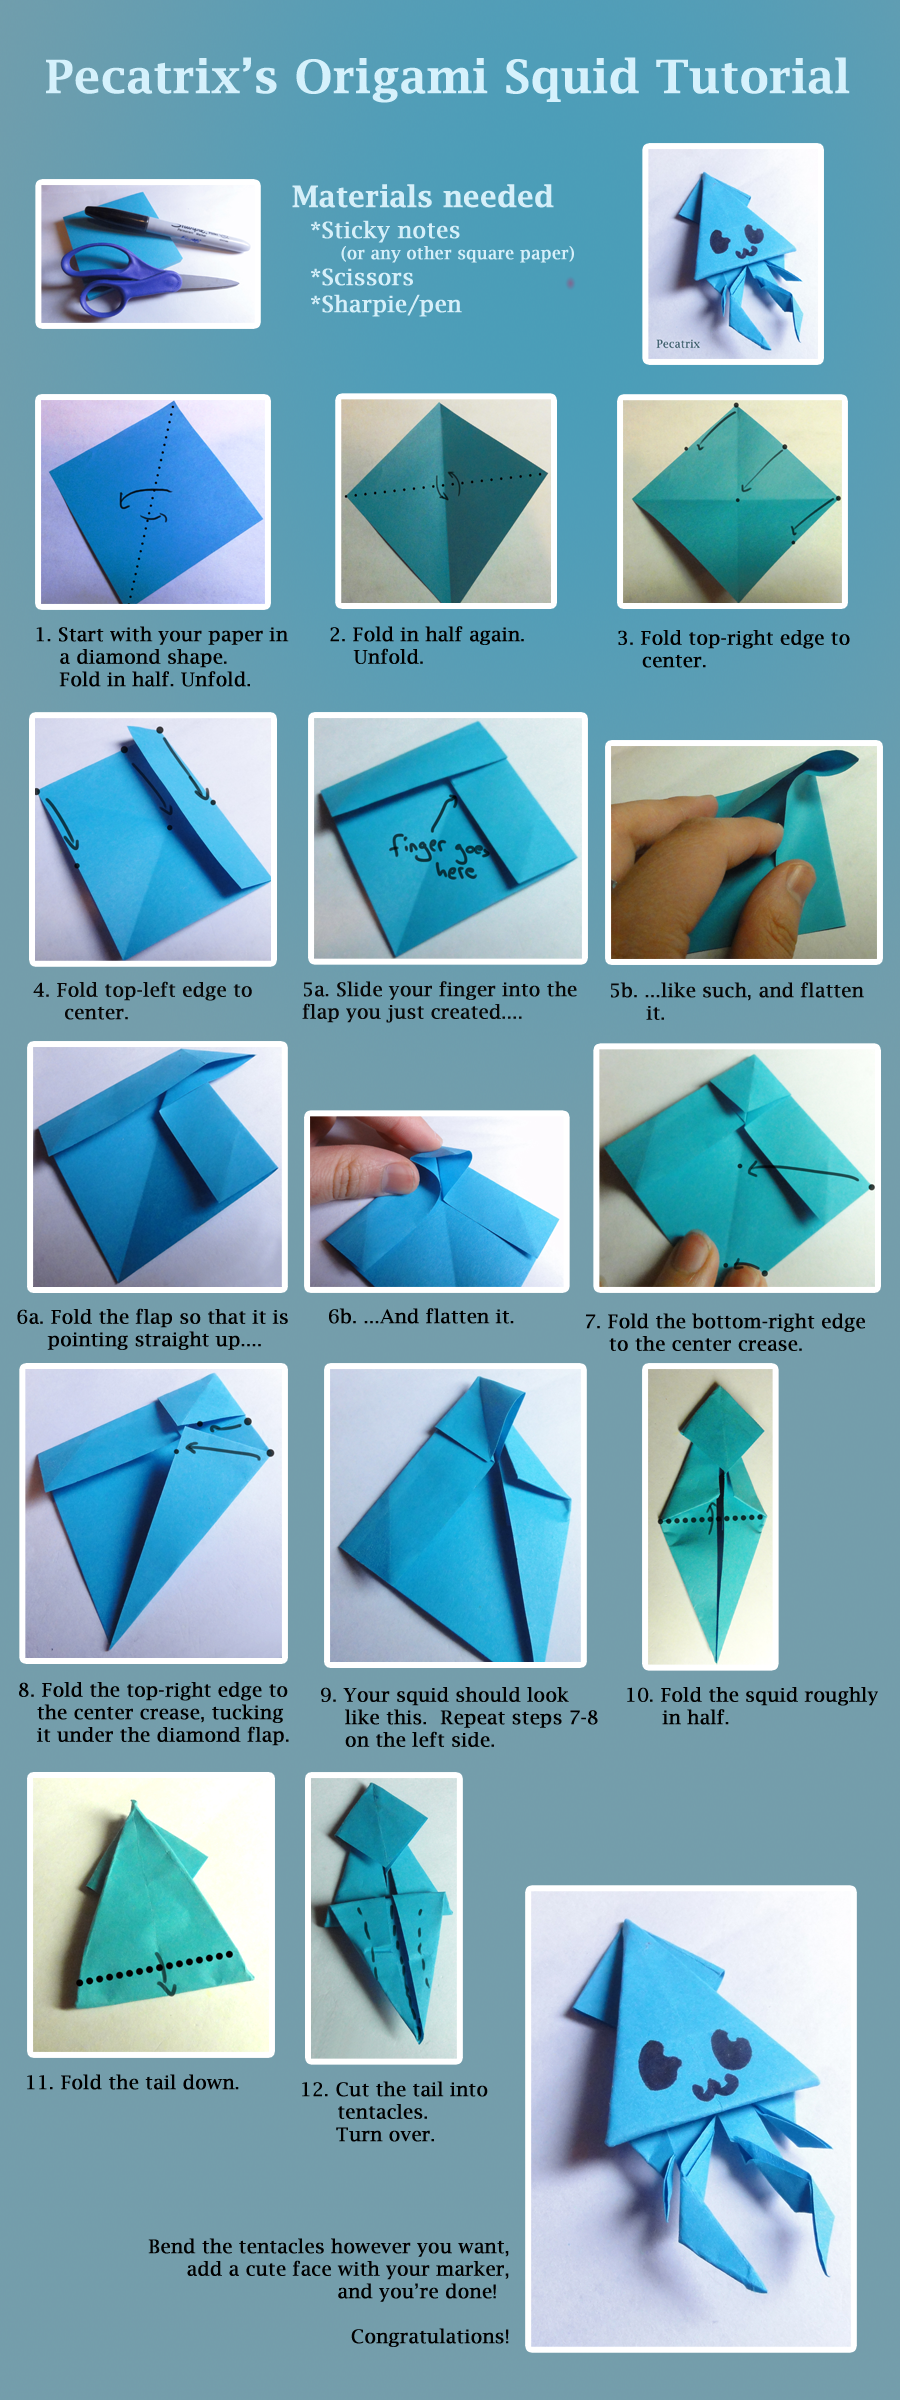 Origami squid tutorial by pecatrix on deviantart origami squid tutorial by pecatrix origami squid tutorial by pecatrix jeuxipadfo Images